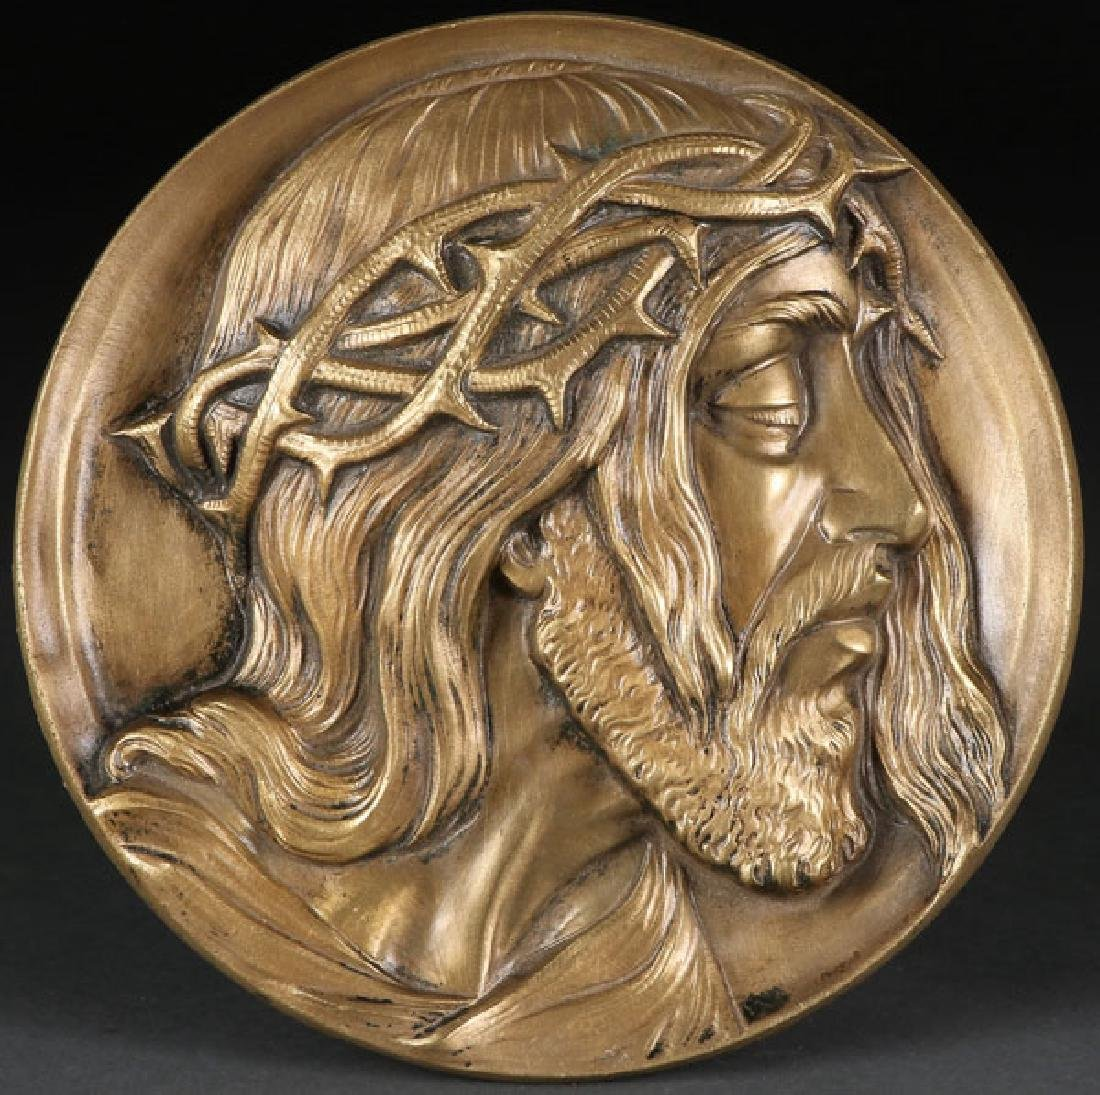 A CAST BRONZE RELIEF PLAQUE OF CHRIST